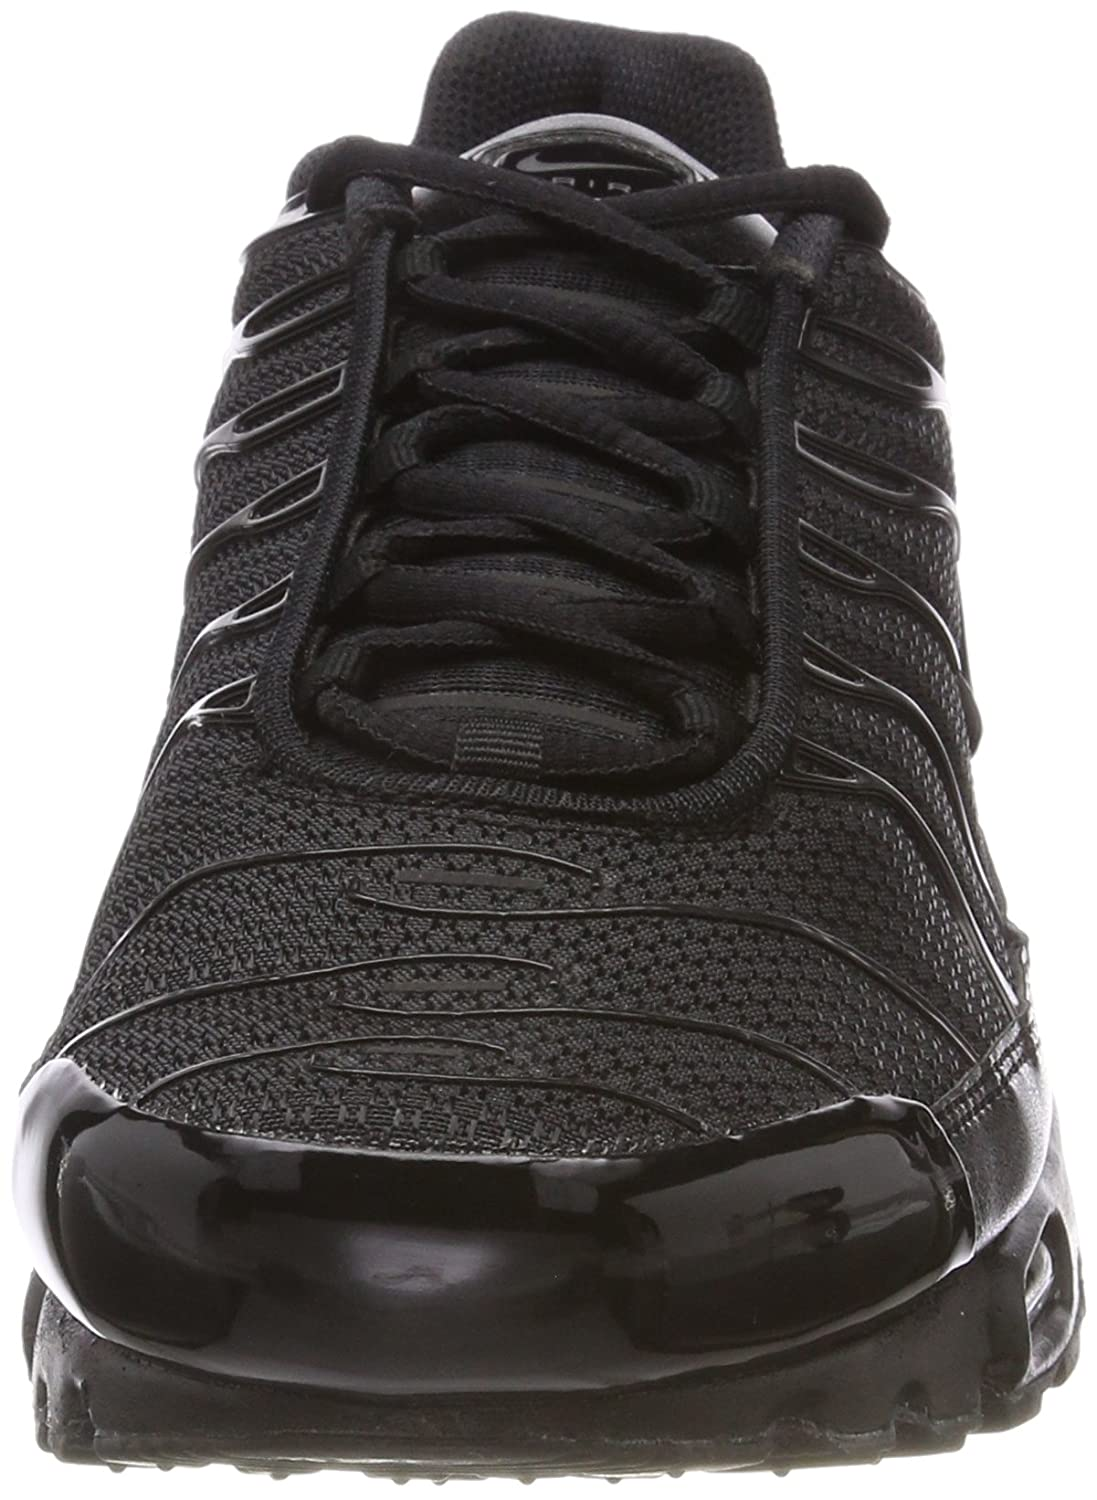 new concept efdee 12728 Amazon.com   Nike Mens Air Max Plus Running Shoes   Shoes